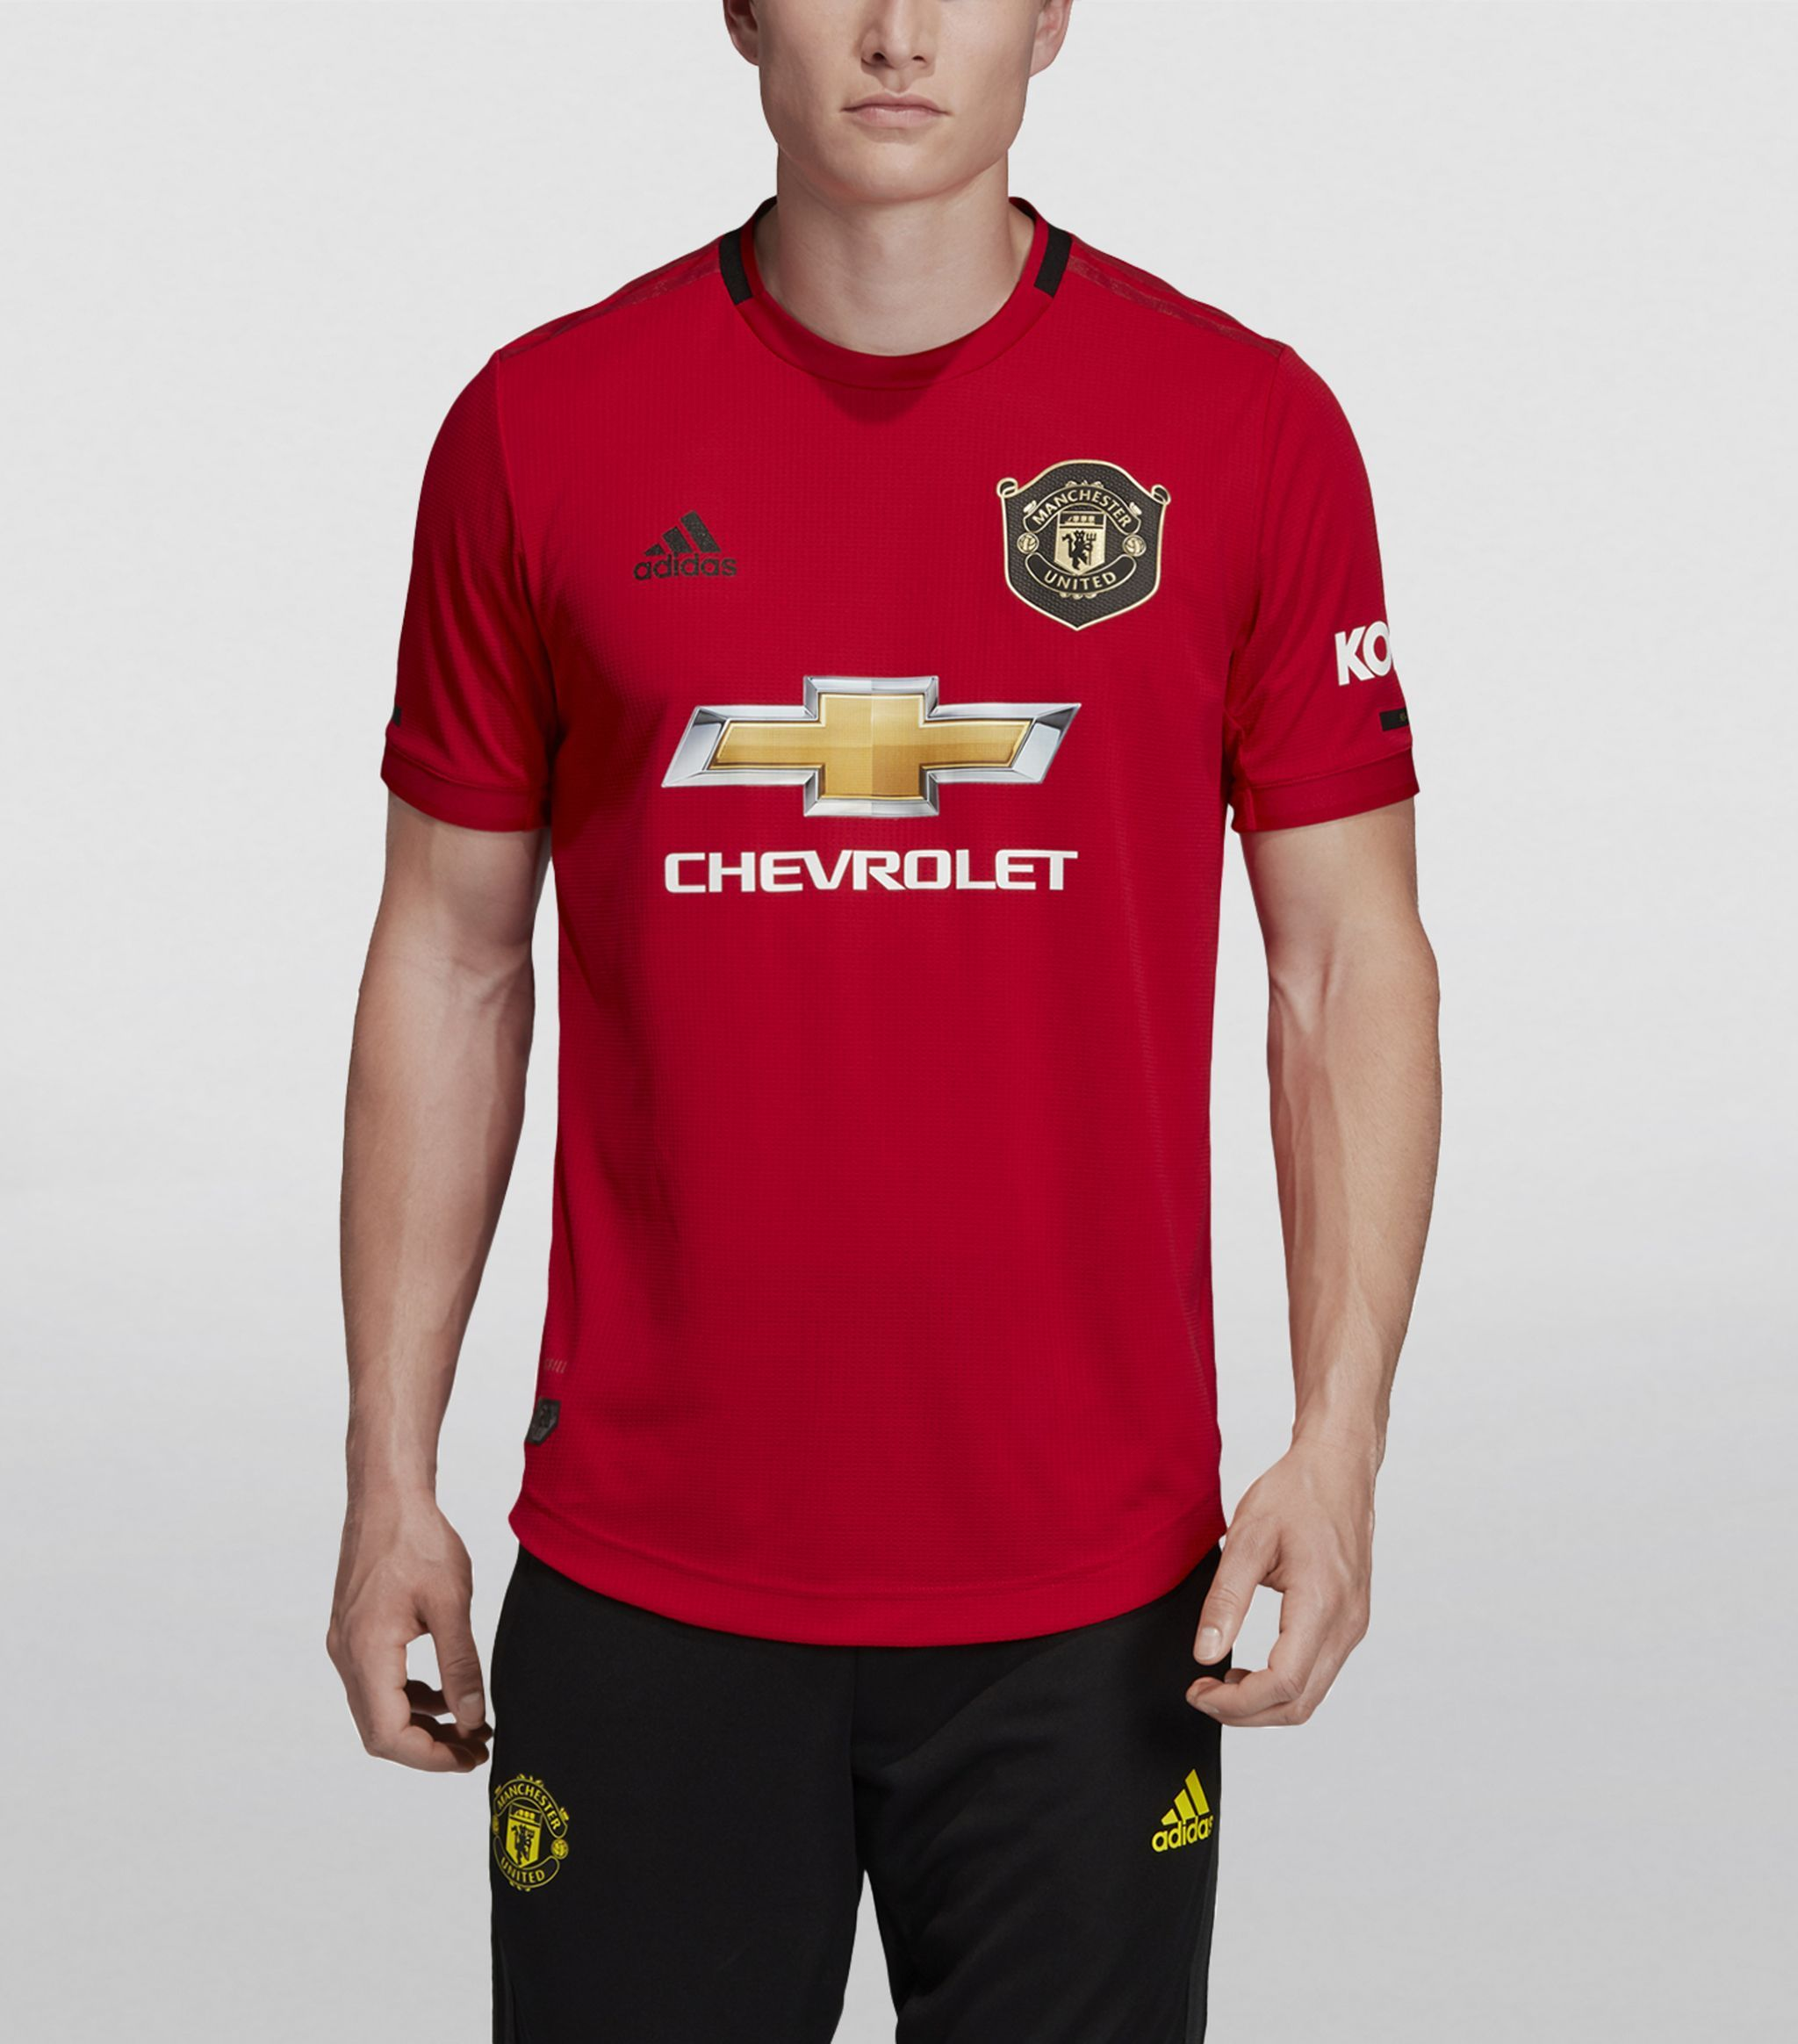 Adidas Red Manchester United Home Jersey Ad Sponsored Manchester Red Adidas Jersey Home Mens Tops Mens Tshirts Womens Fashion Accessories